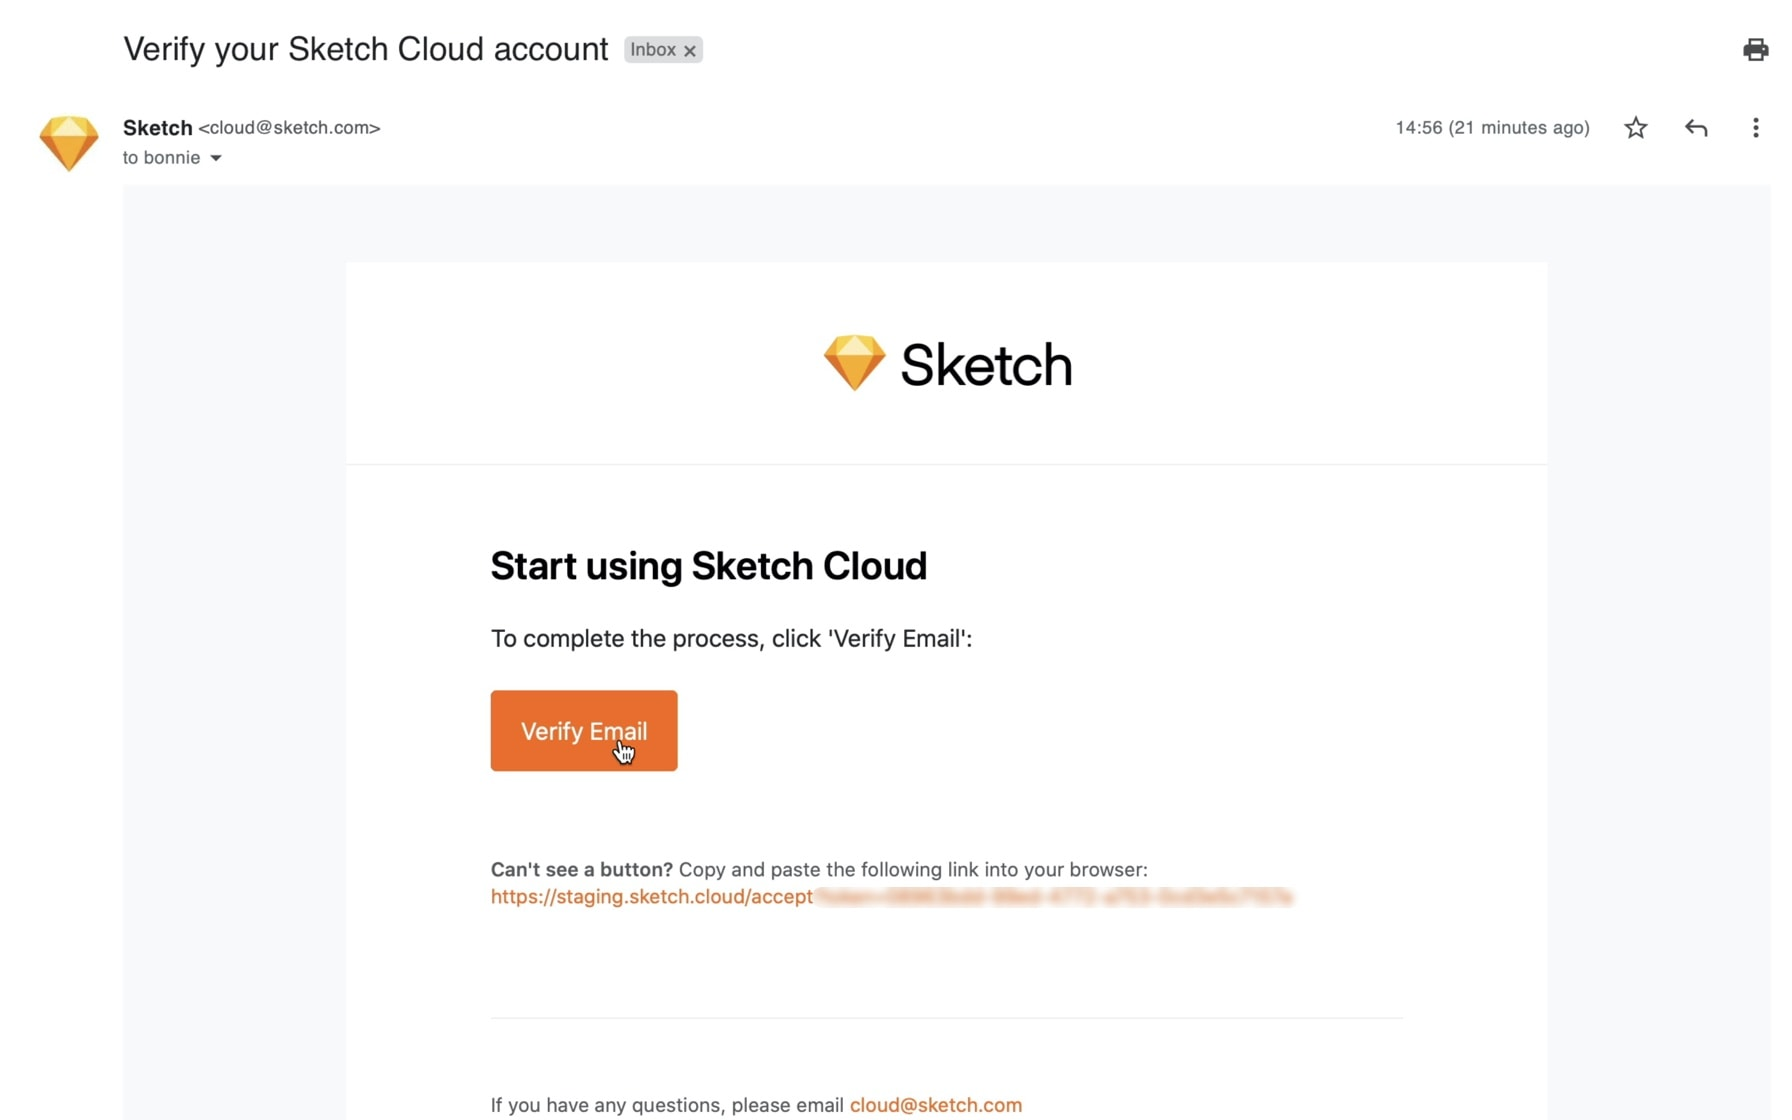 An image showing the verification step of signing up for a Sketch account.